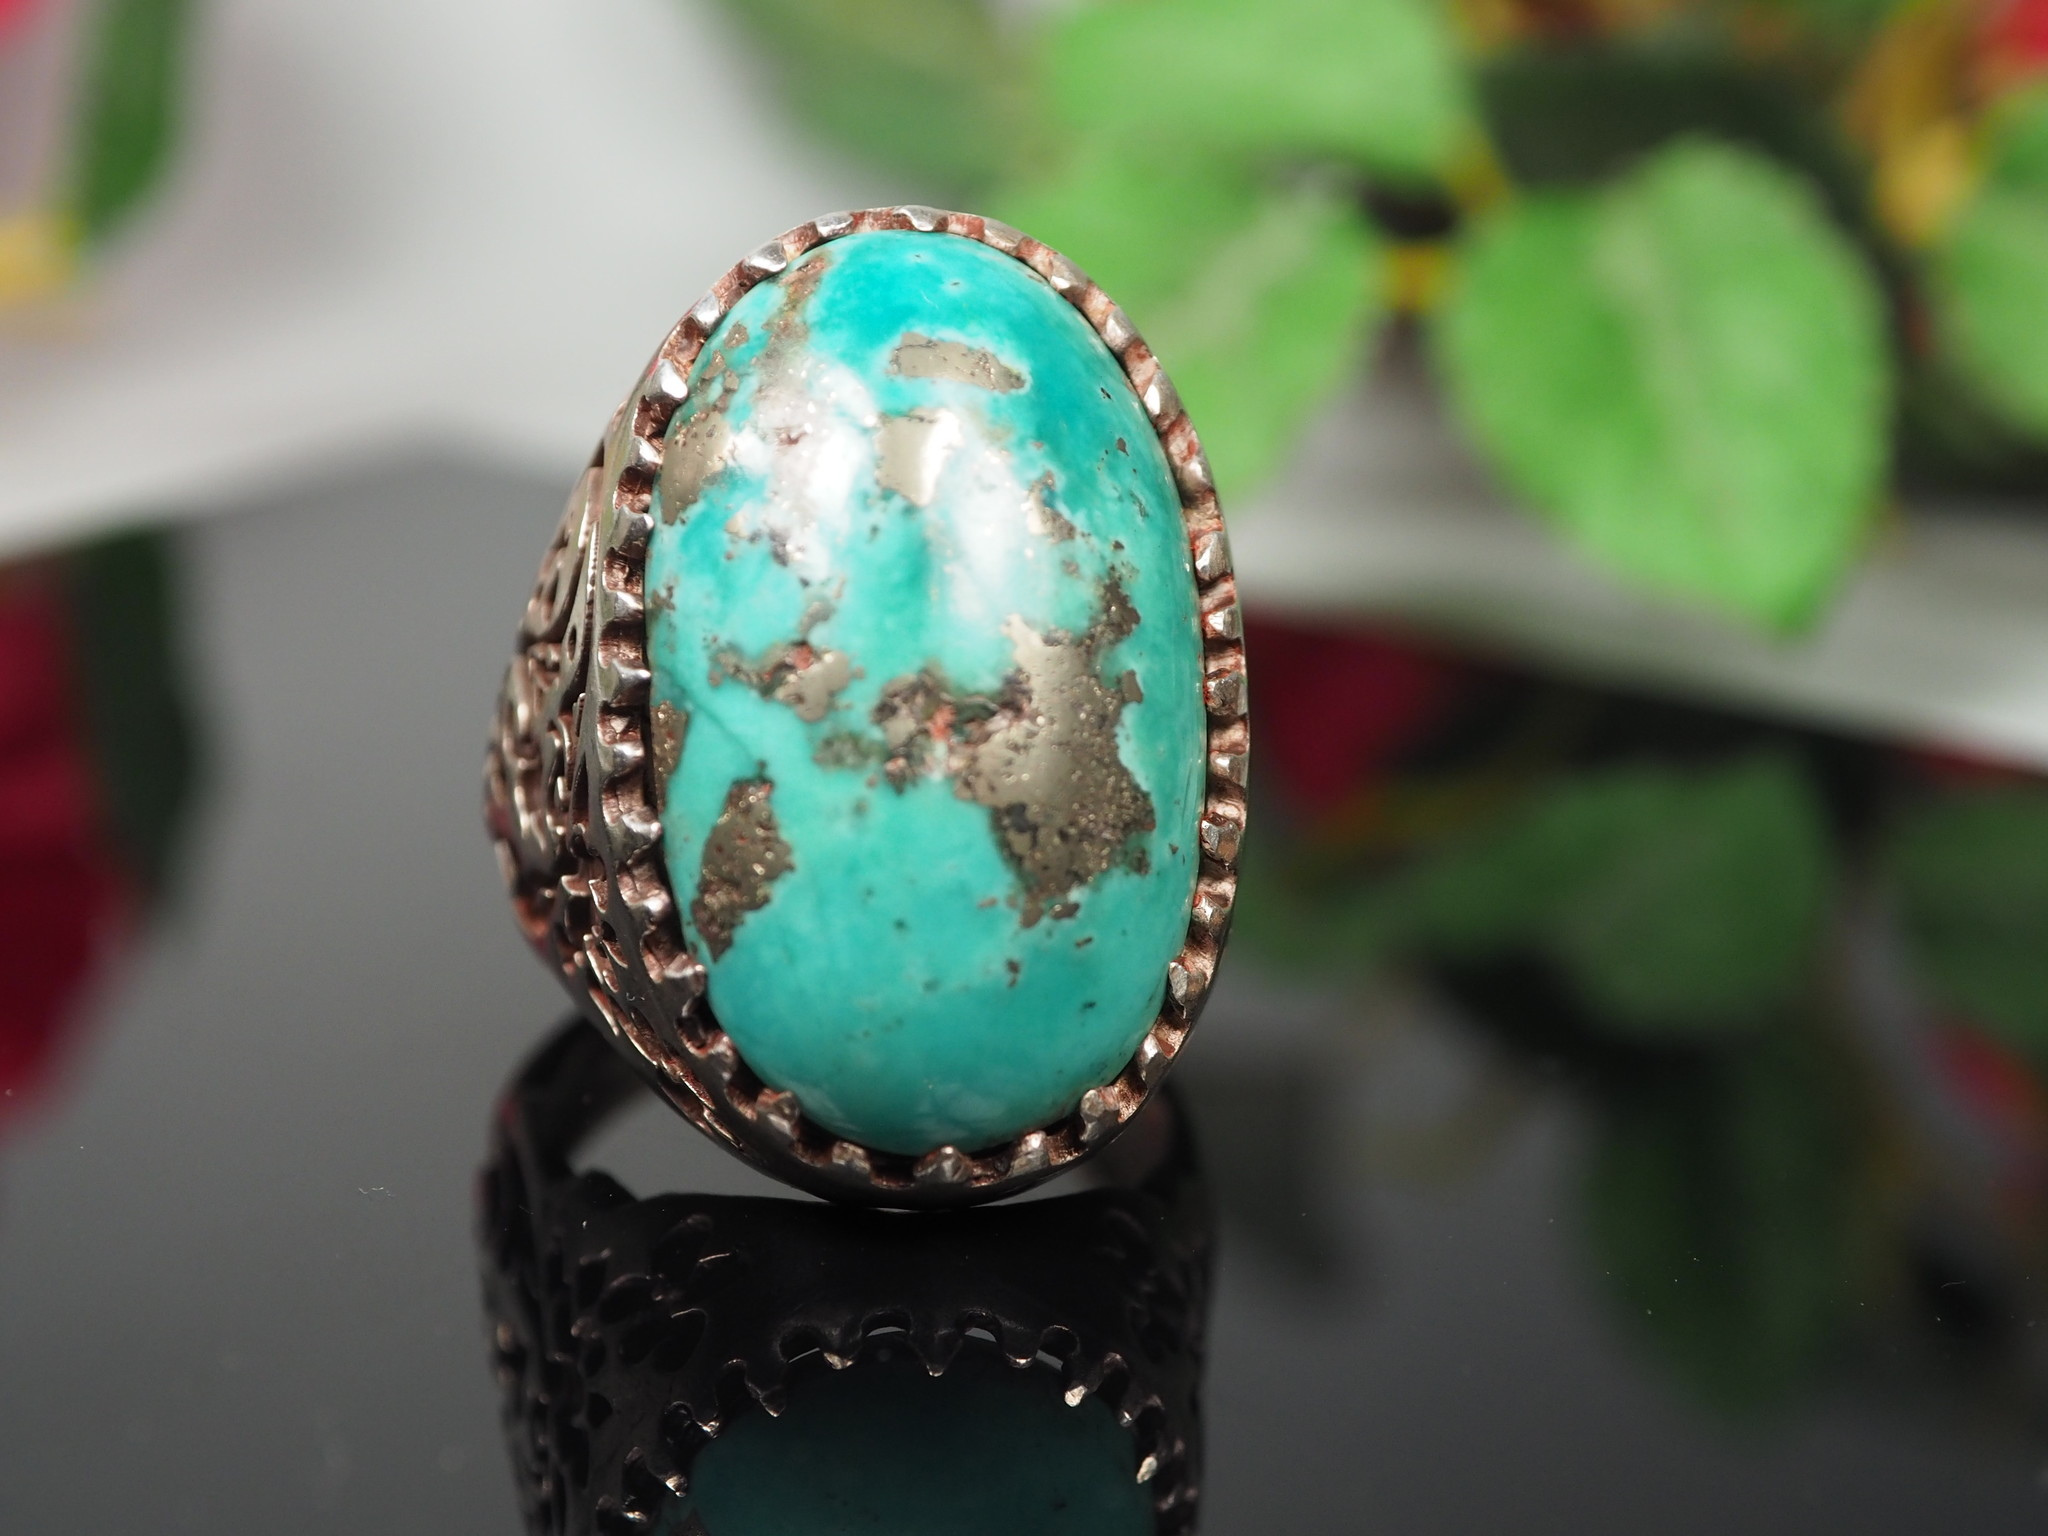 antique handmade Silver turquoise stone turkmen statement ring from Afghanistan No:WL21/18